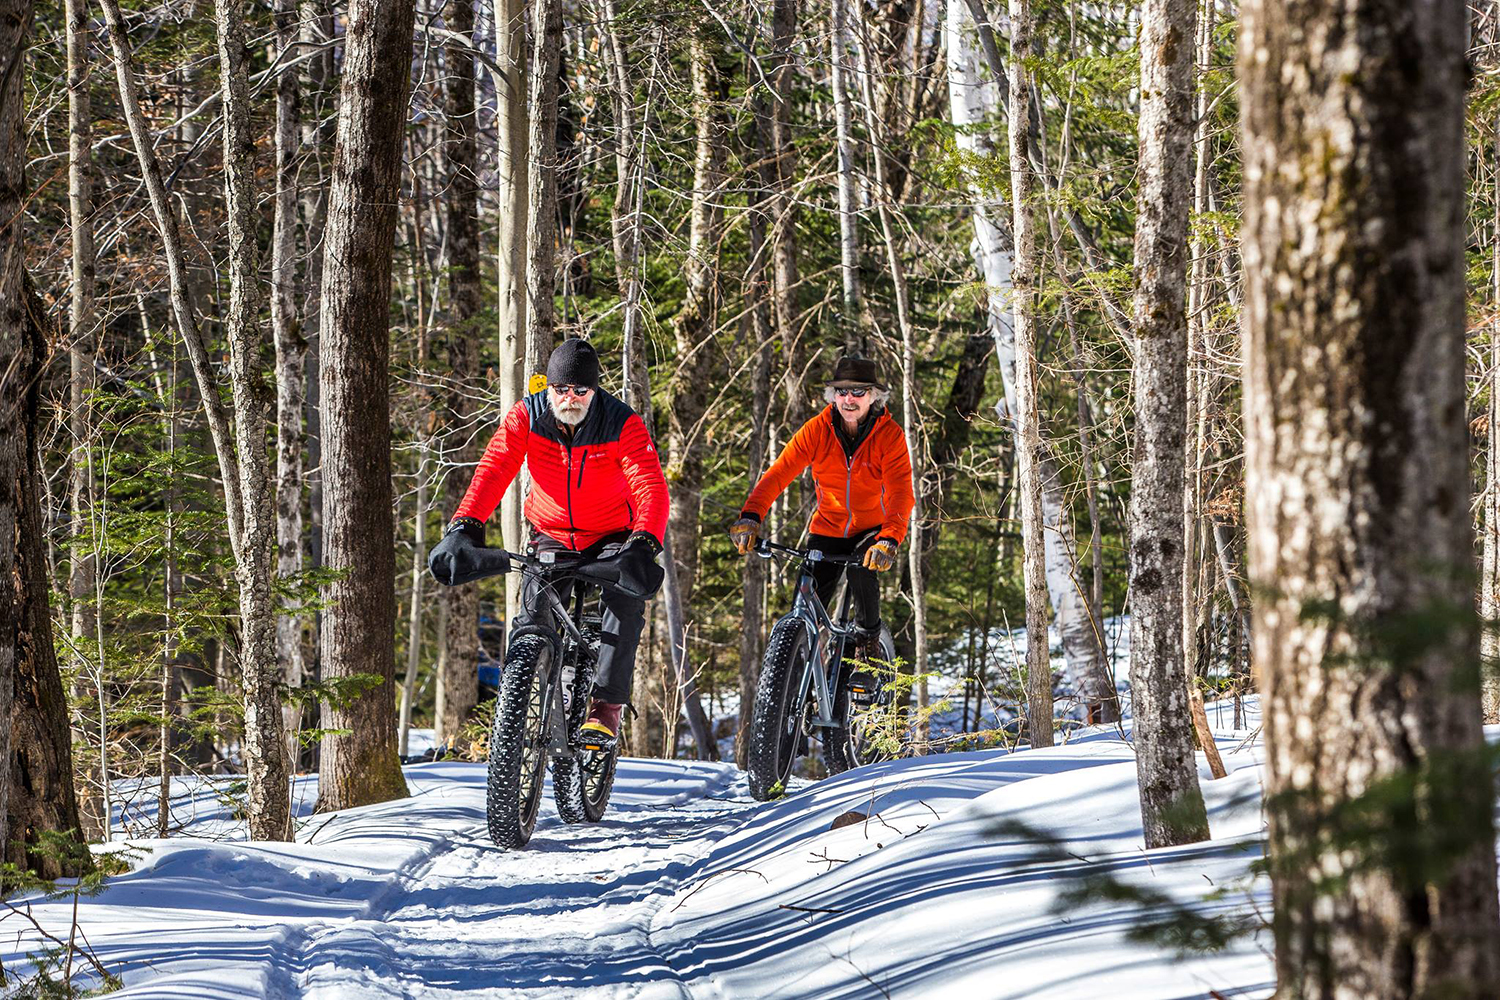 Garnet Hill's Winter Fest is on Feb. 23 with fat bike rides (Grey Ghost demos) and 3K and 6K Nordic ski races.